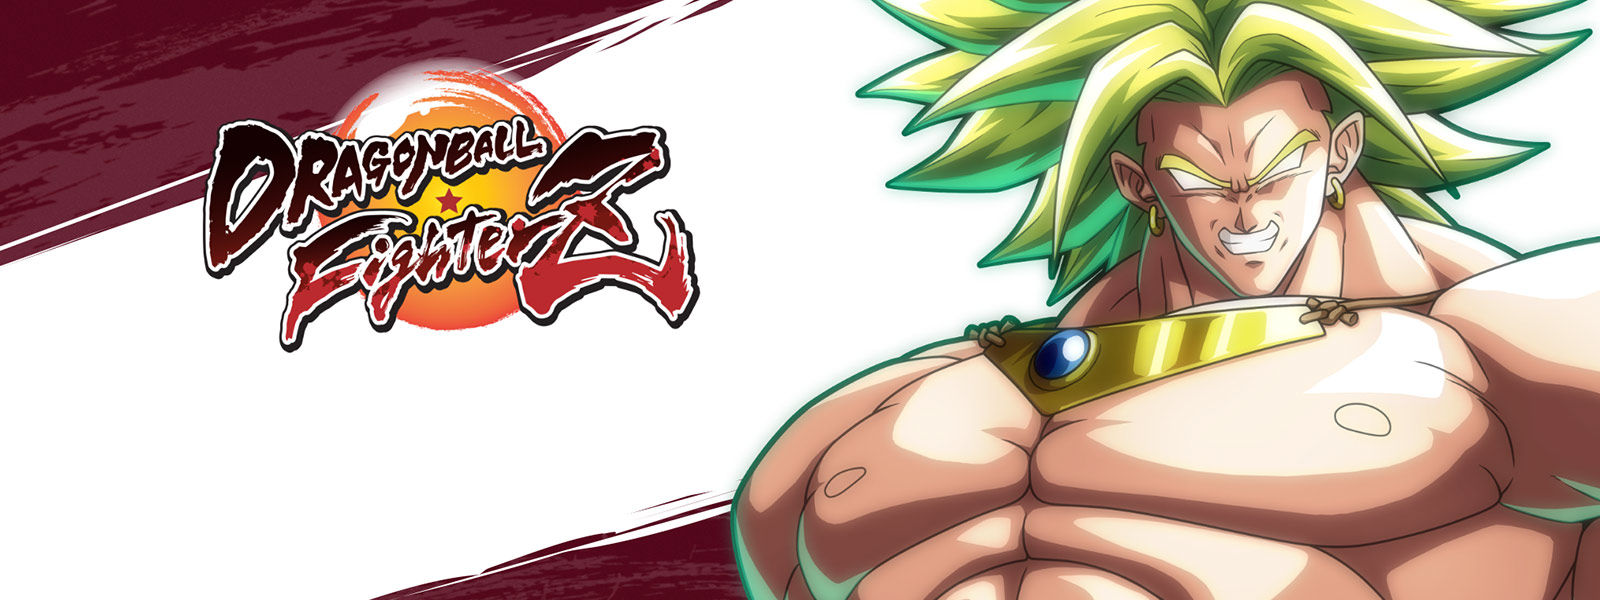 Dragon Ball FighterZ, Front view of Broly and his large chest